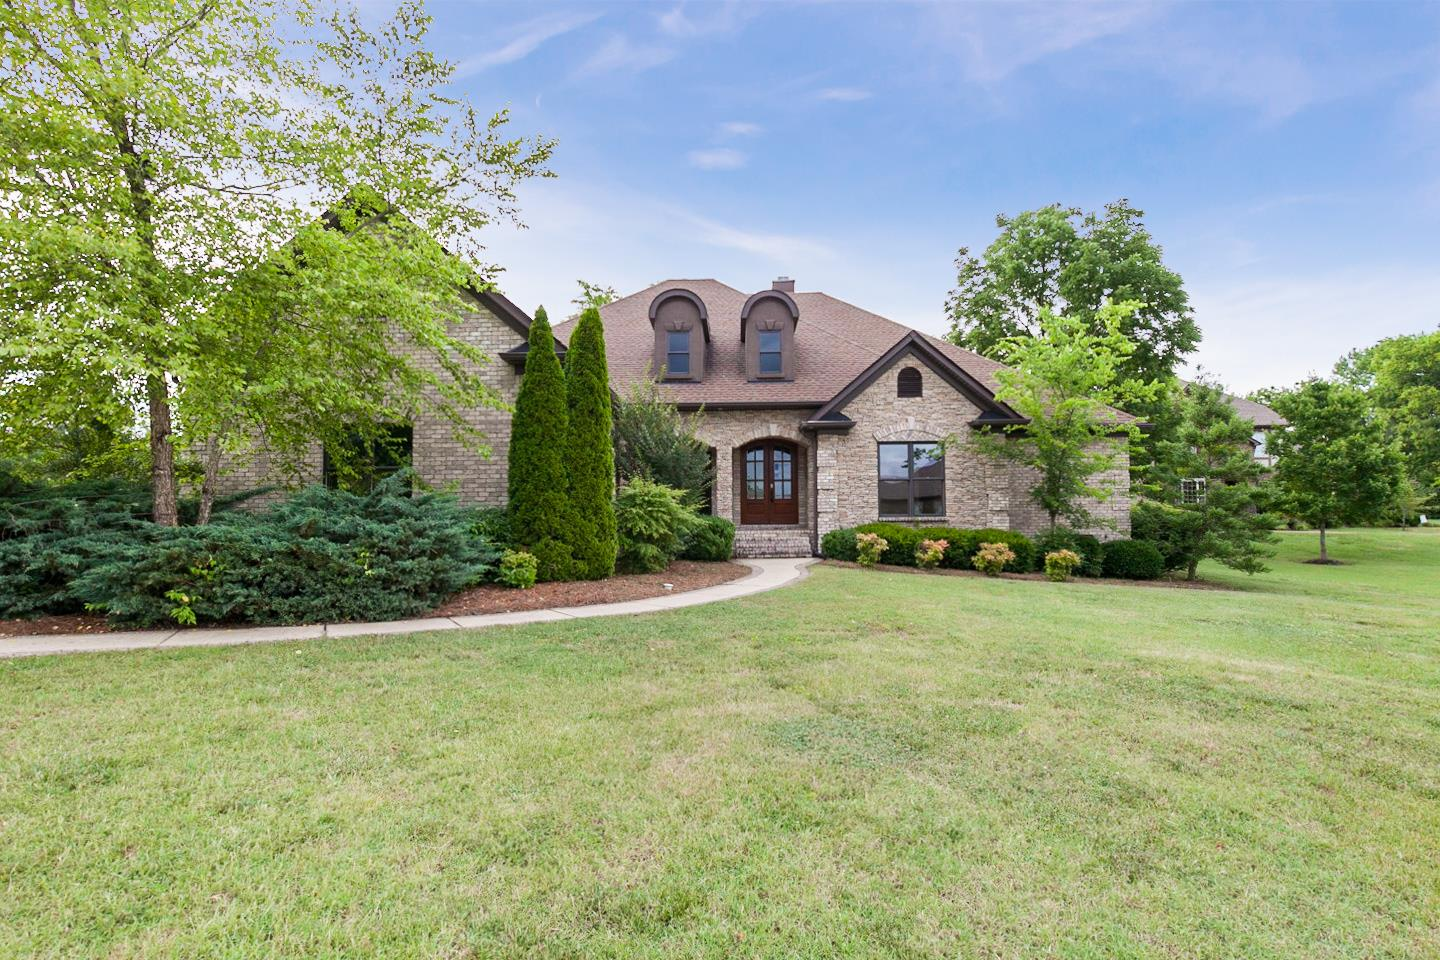 1146 Blackshear Dr 37066 - One of Gallatin Homes for Sale